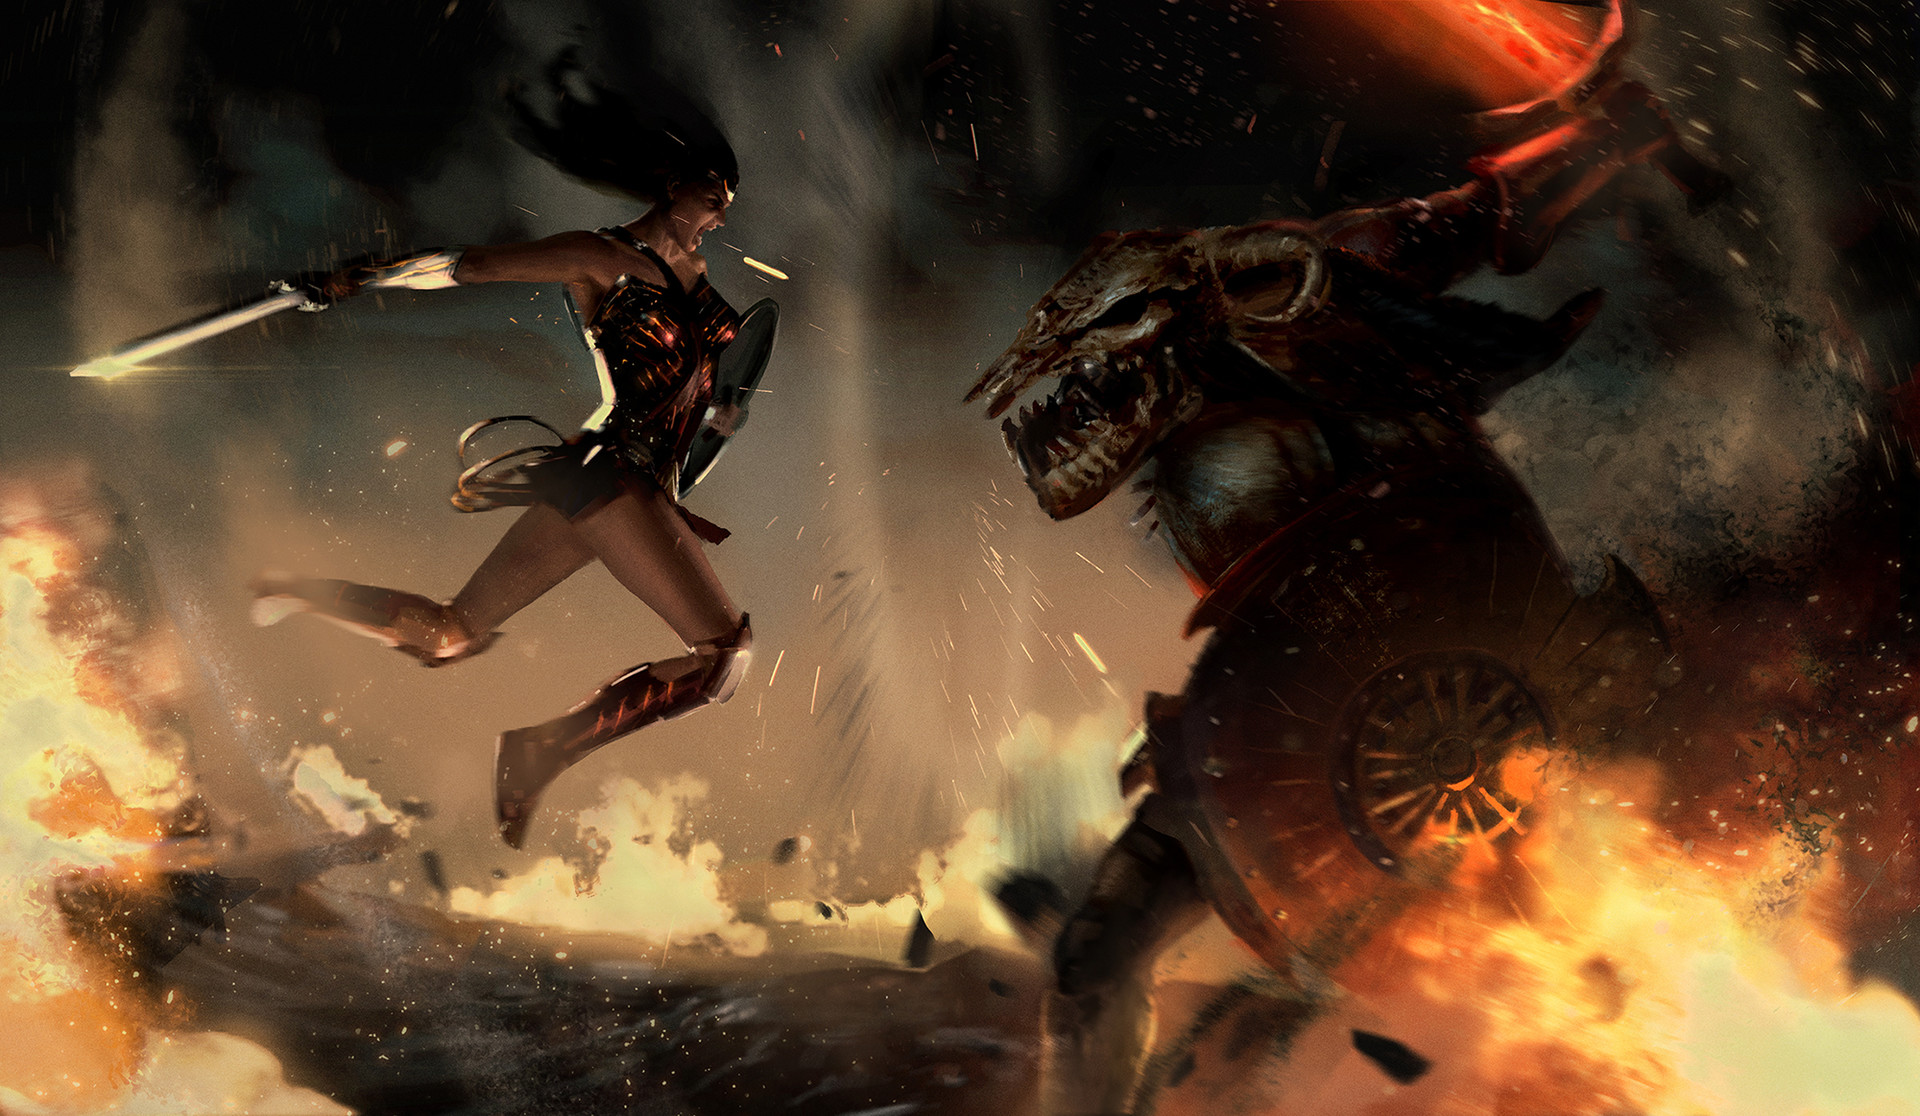 wonder woman vs ares hd artist 4k wallpapers images backgrounds